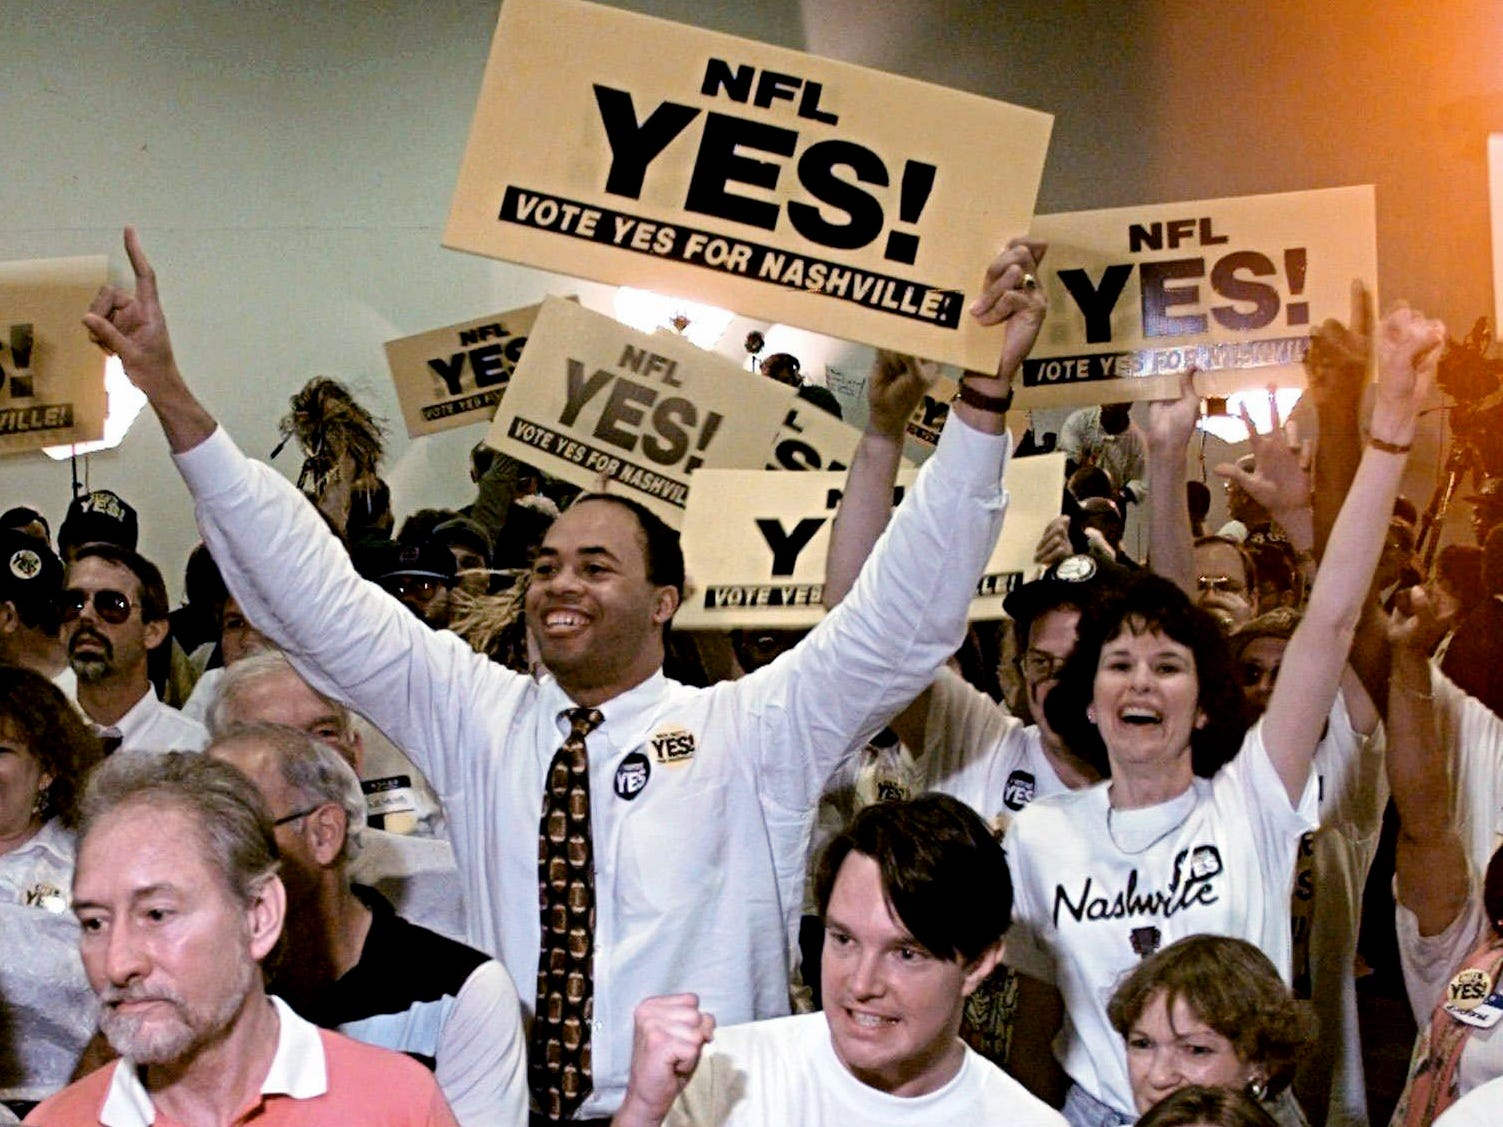 Supporters of a referendum bringing the Houston Oilers to Nashville celebrate its passage May 7, 1996 in Nashville. By a margin of 59 percent to 40 percent, voters brought the NFL team to Tennessee, making it the first big league franchise in the state.